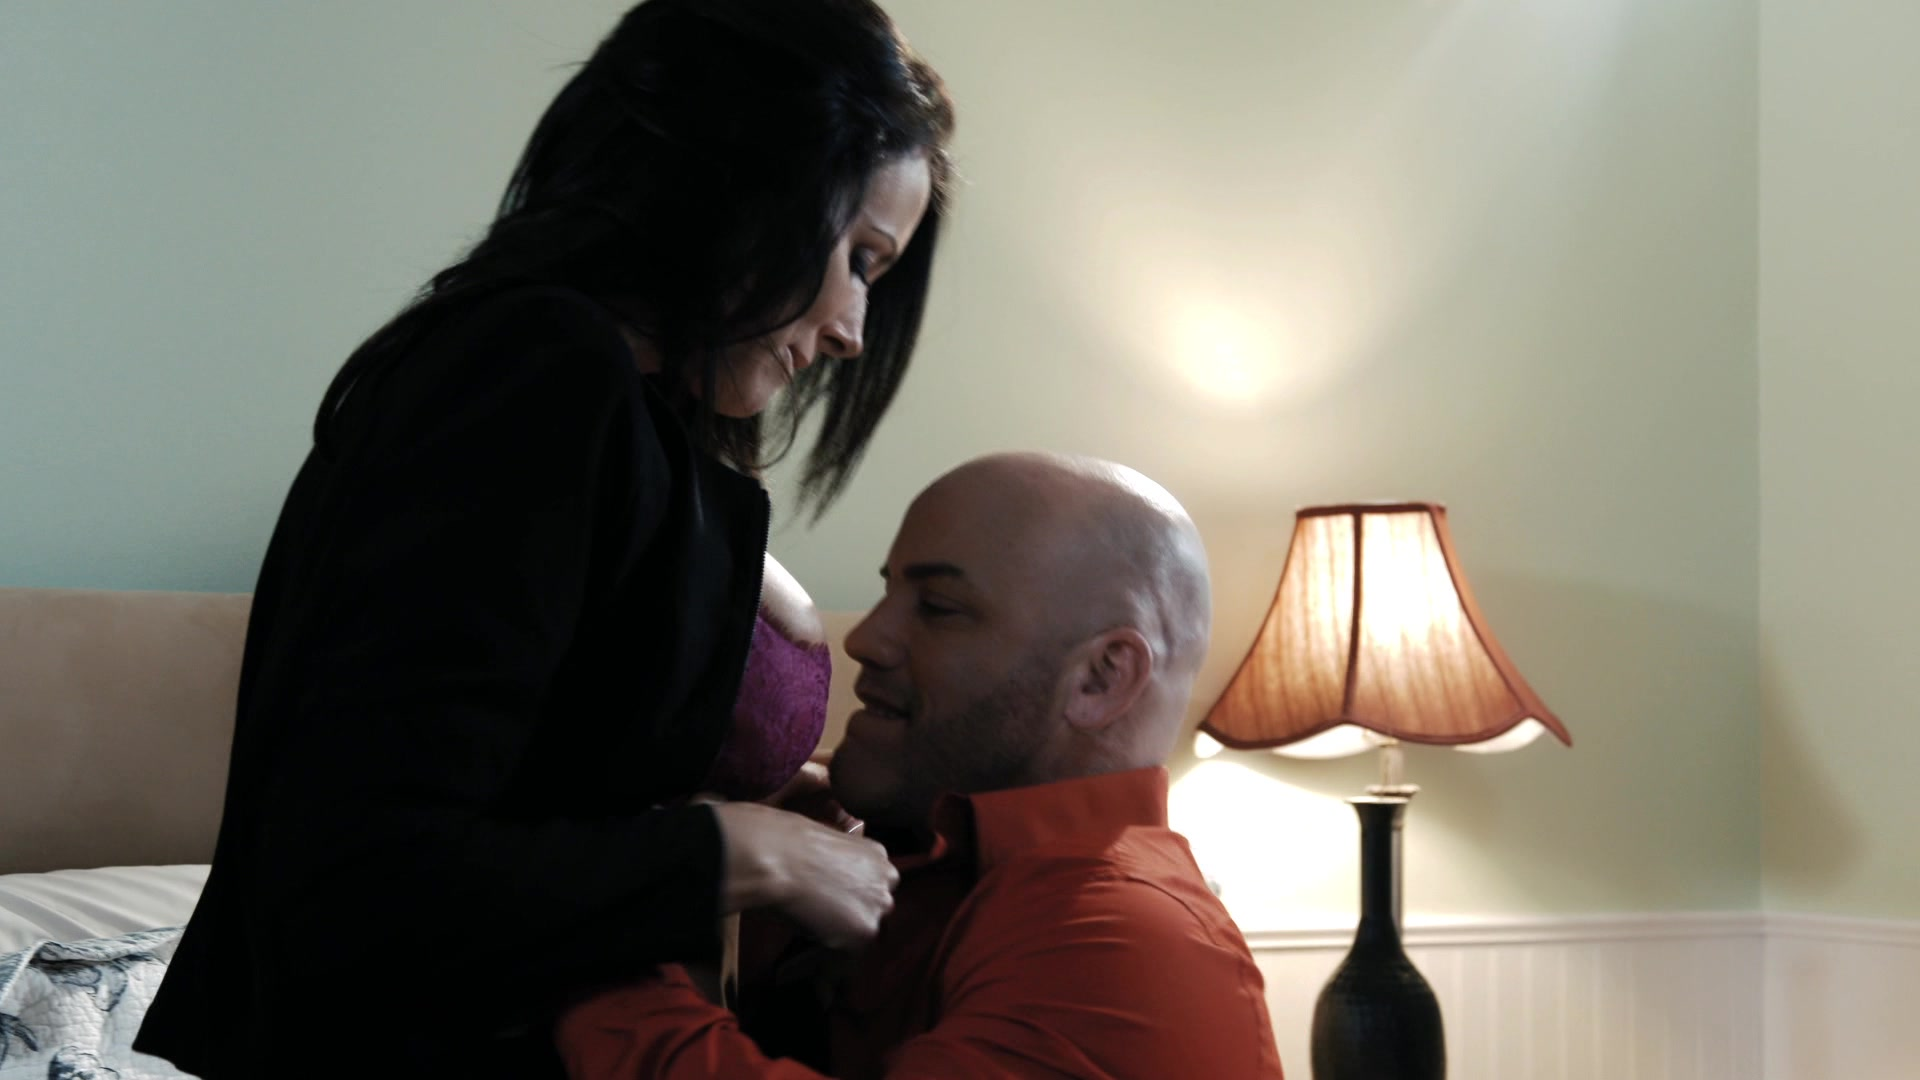 Scene with Derrick Pierce and Reagan Foxx - image 5 out of 20